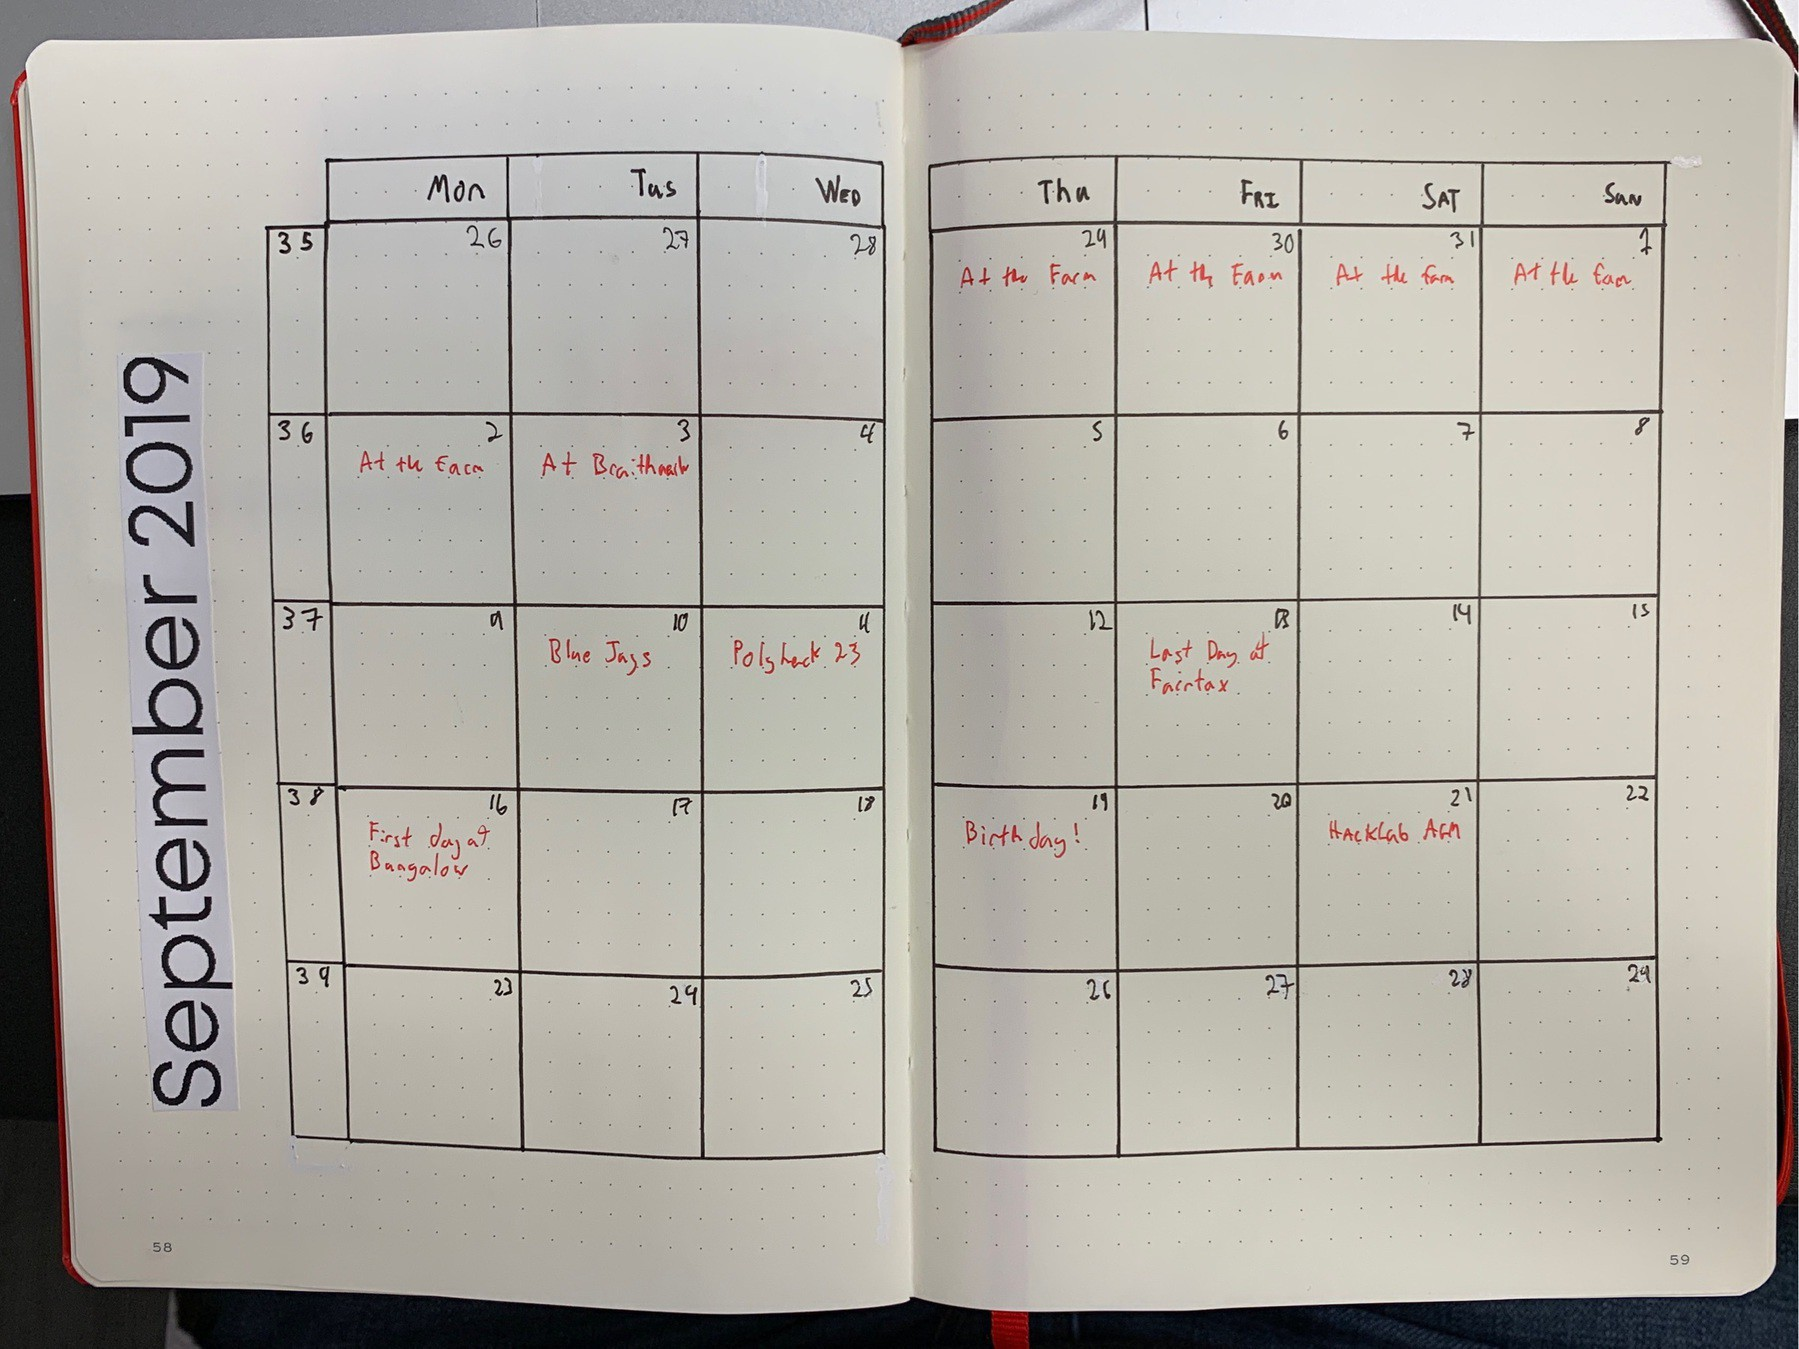 My Bullet Journal's Monthly Log for September 2019.